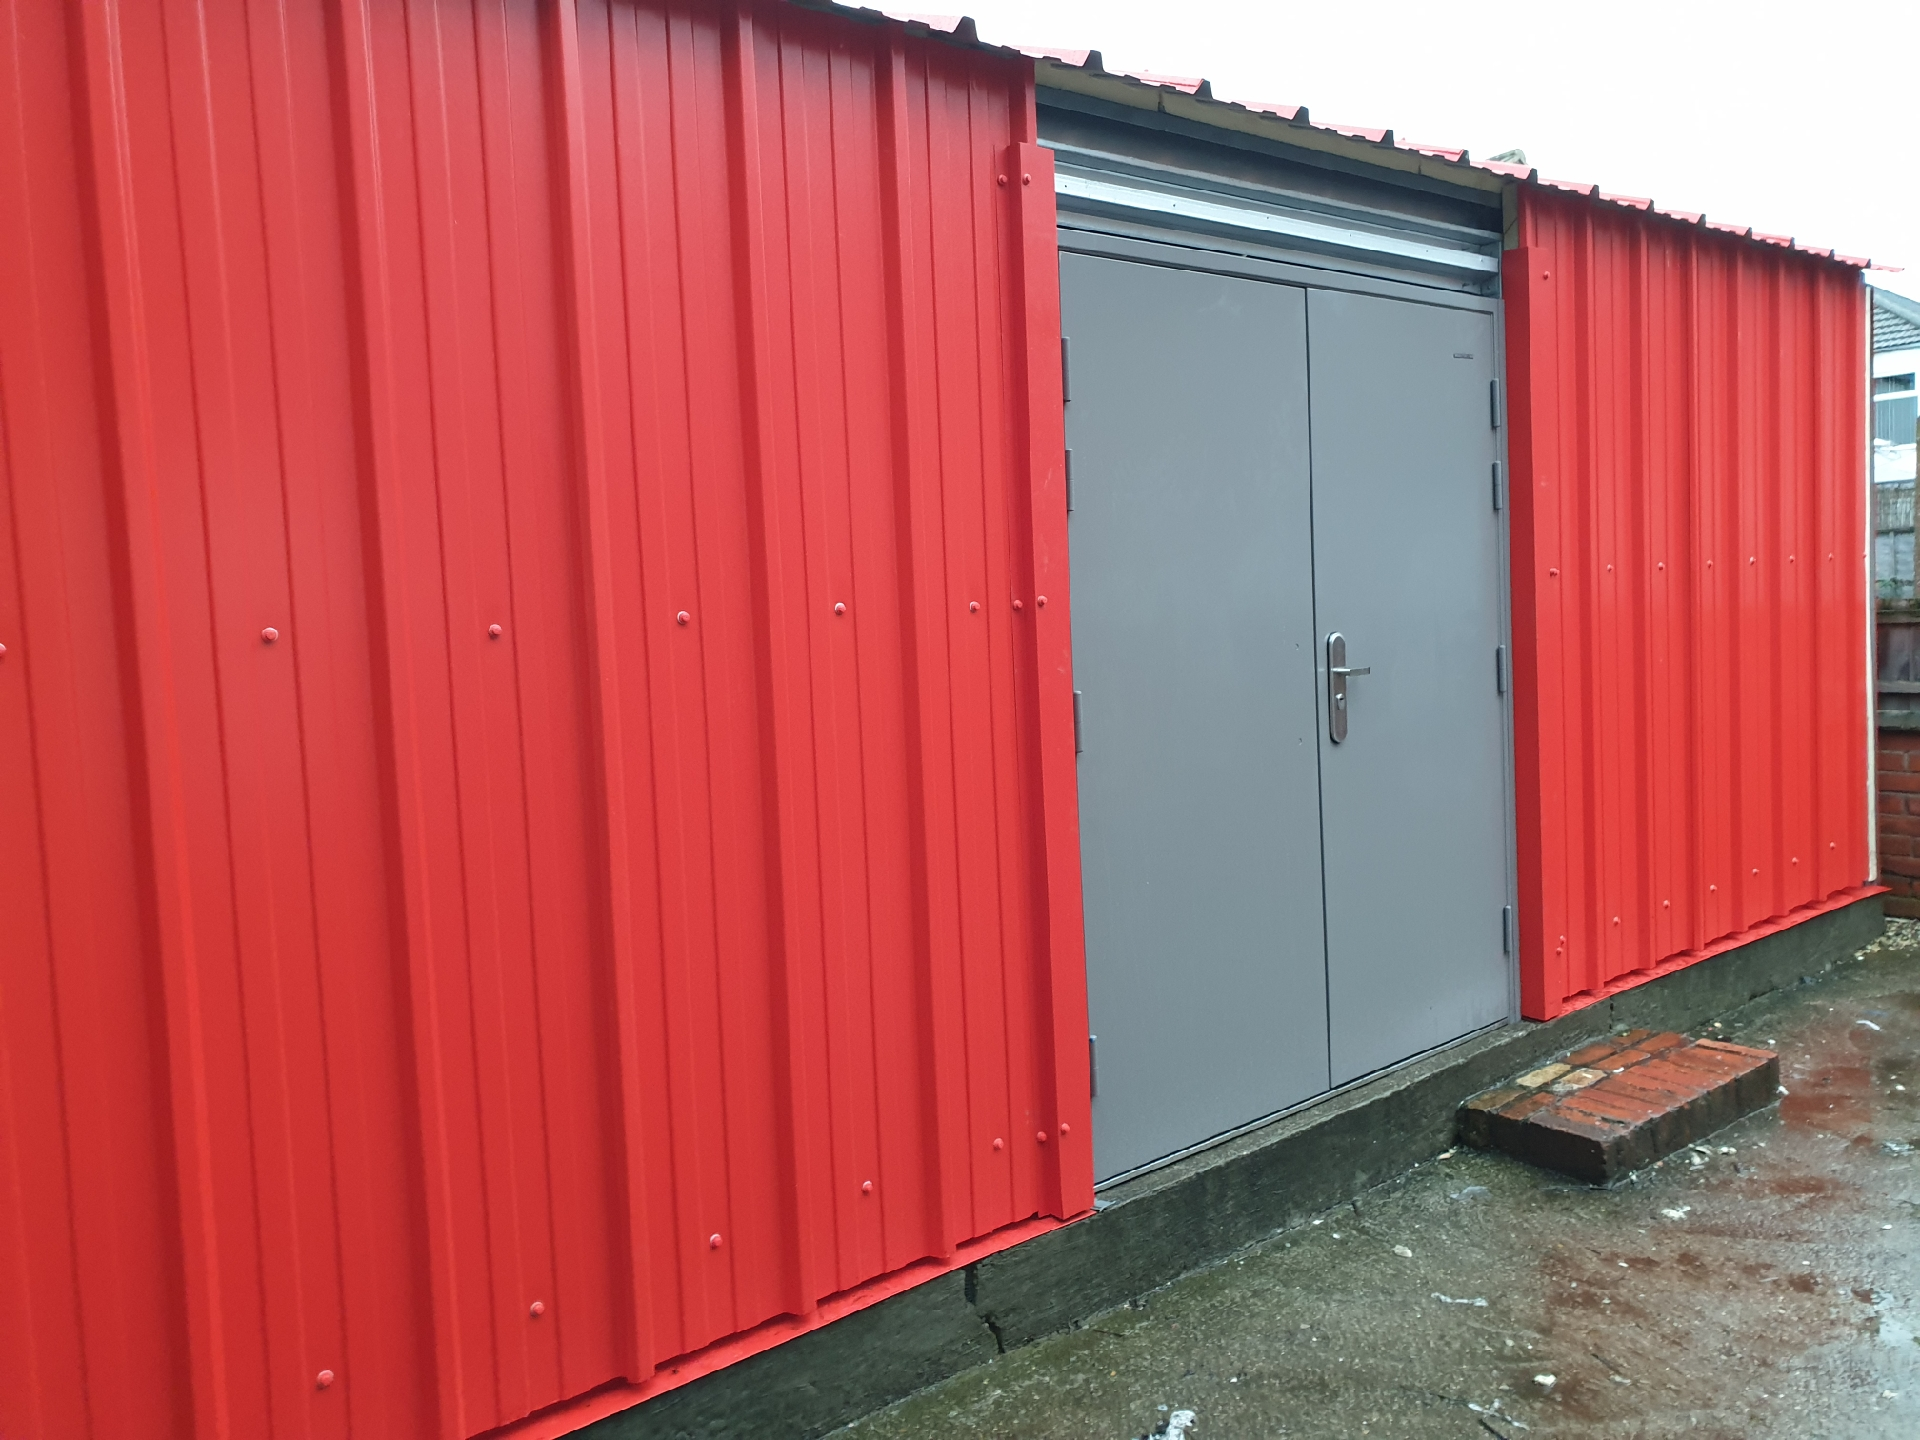 The shed is finished